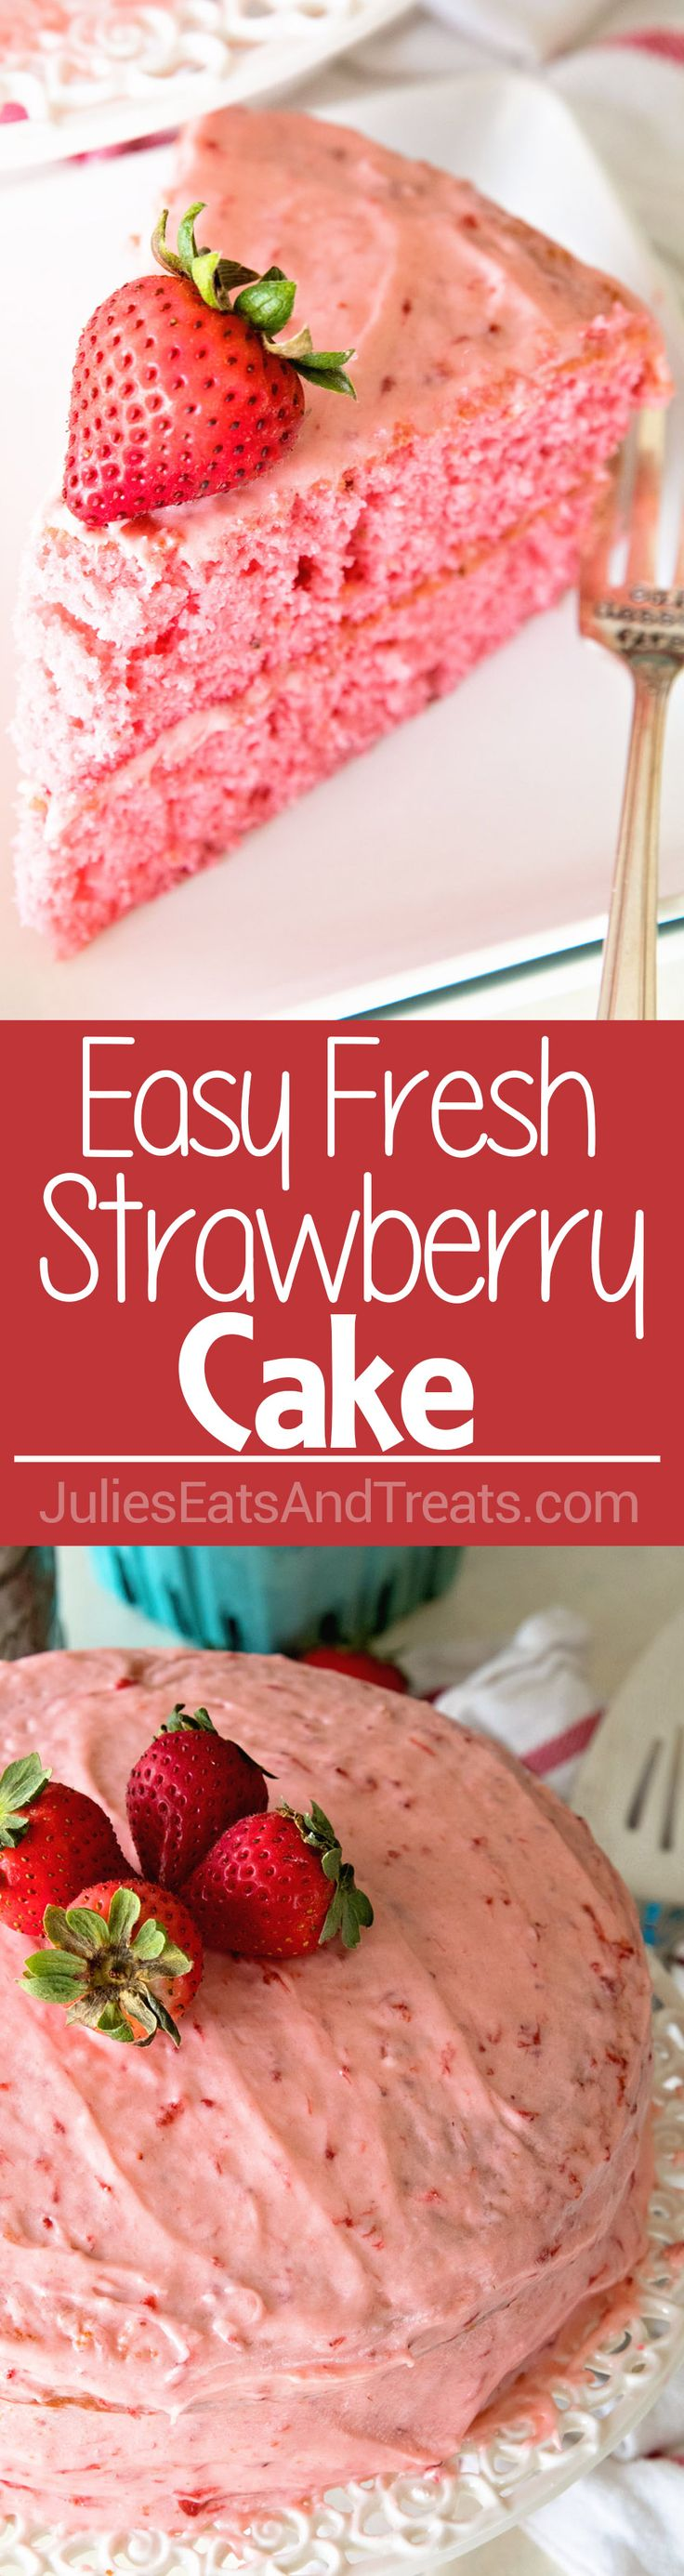 Easy Strawberry Cake ~ Starts with a Boxed Mix and is Dressed Up Fresh Strawberries and Iced with a Fresh Strawberry Frosting!